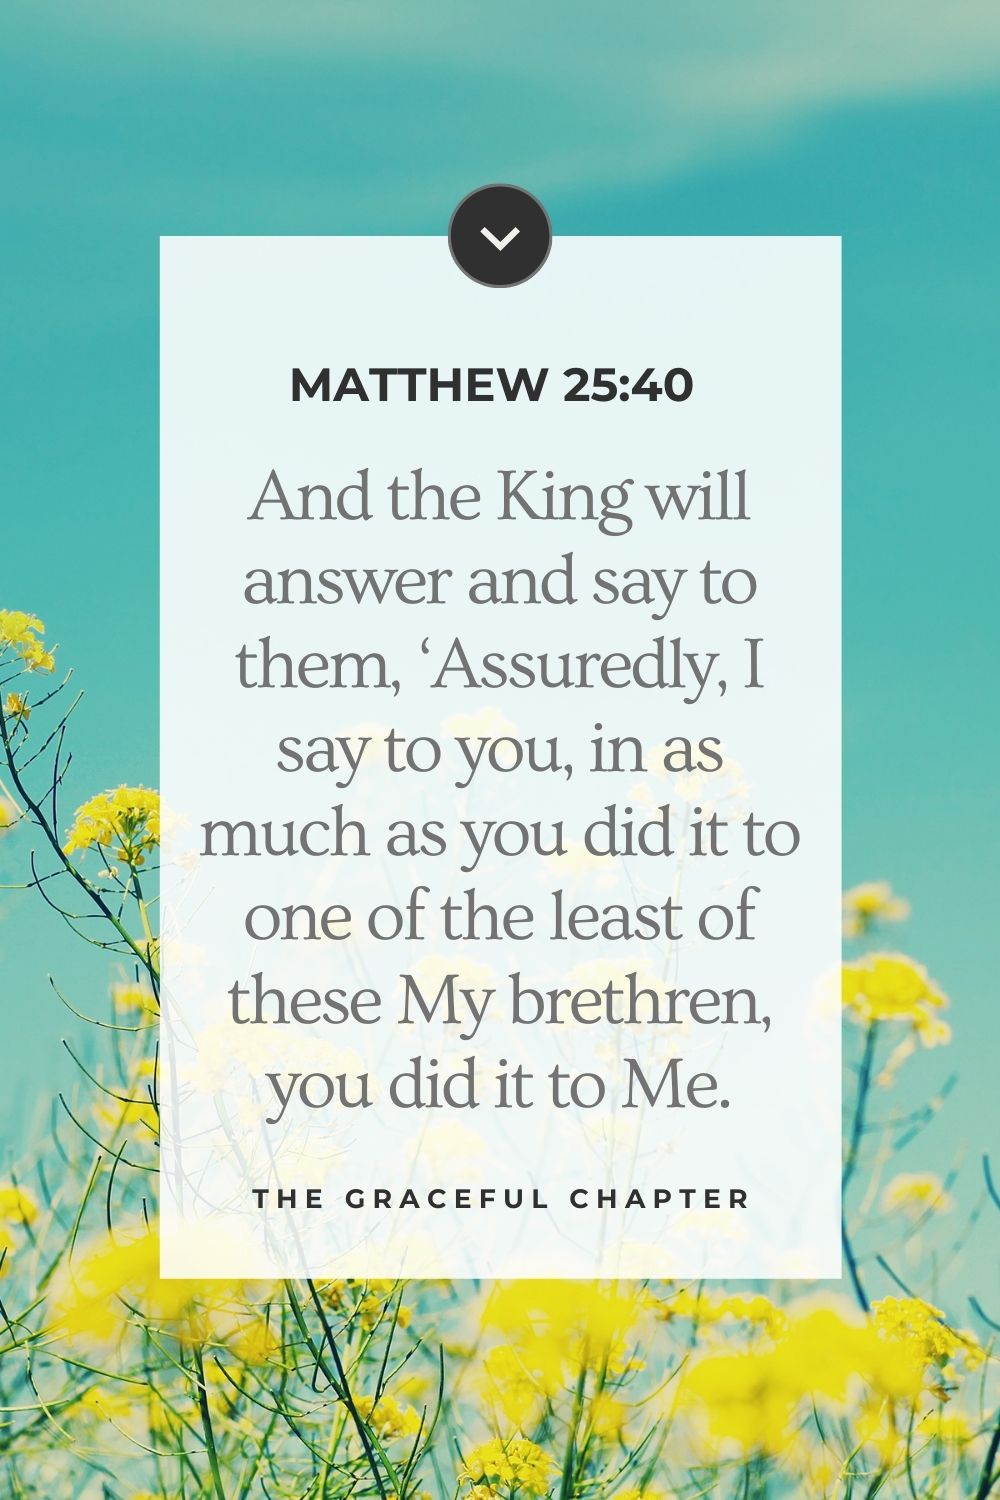 And the King will answer and say to them, 'Assuredly, I say to you, in as much as you did it to one of the least of these My brethren, you did it to Me.'